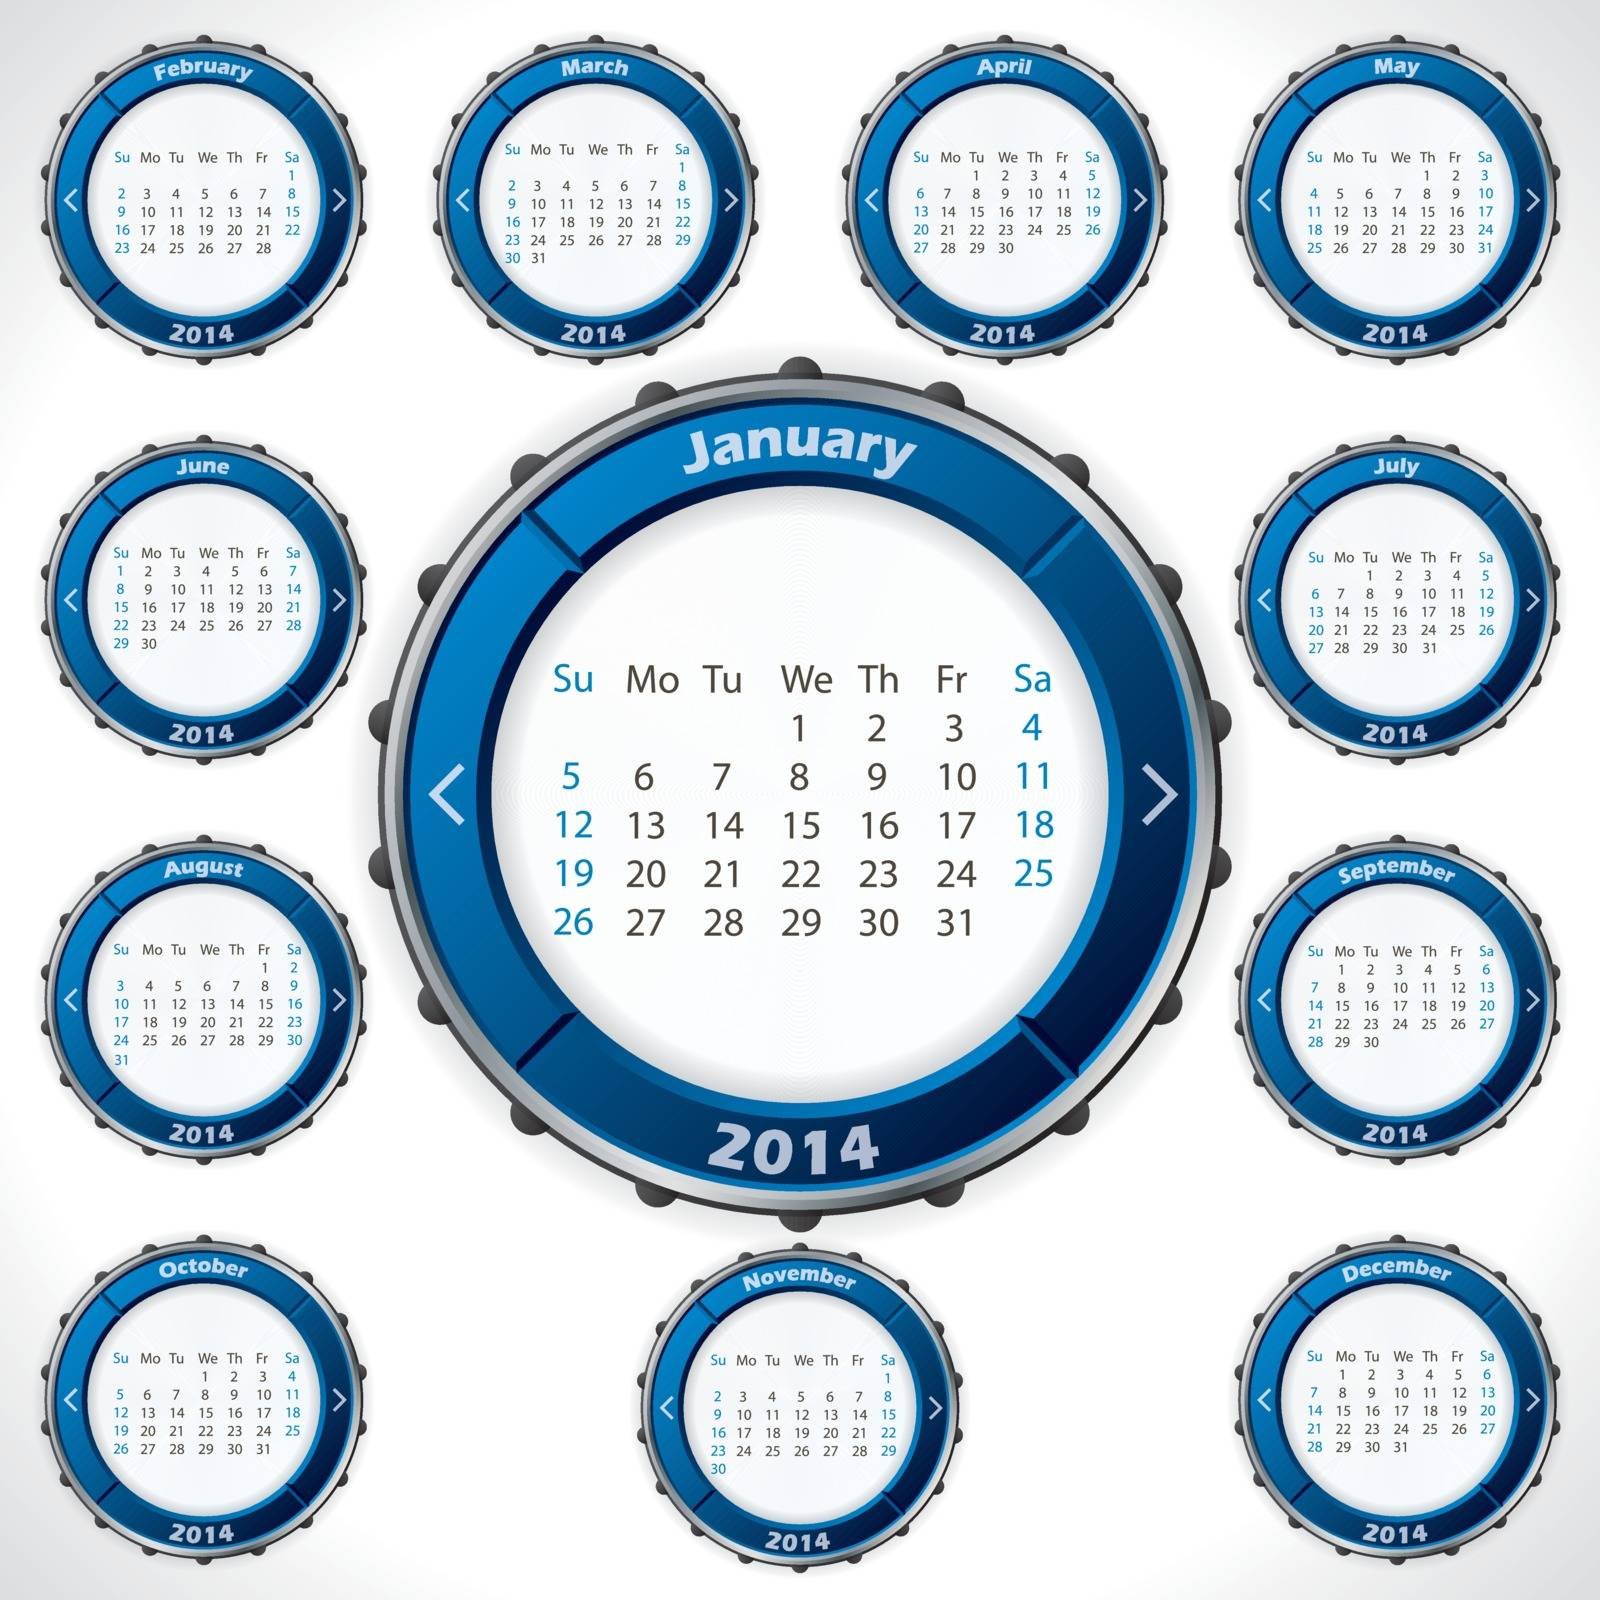 Unusual and rotateable 2014 calendar design with blue color